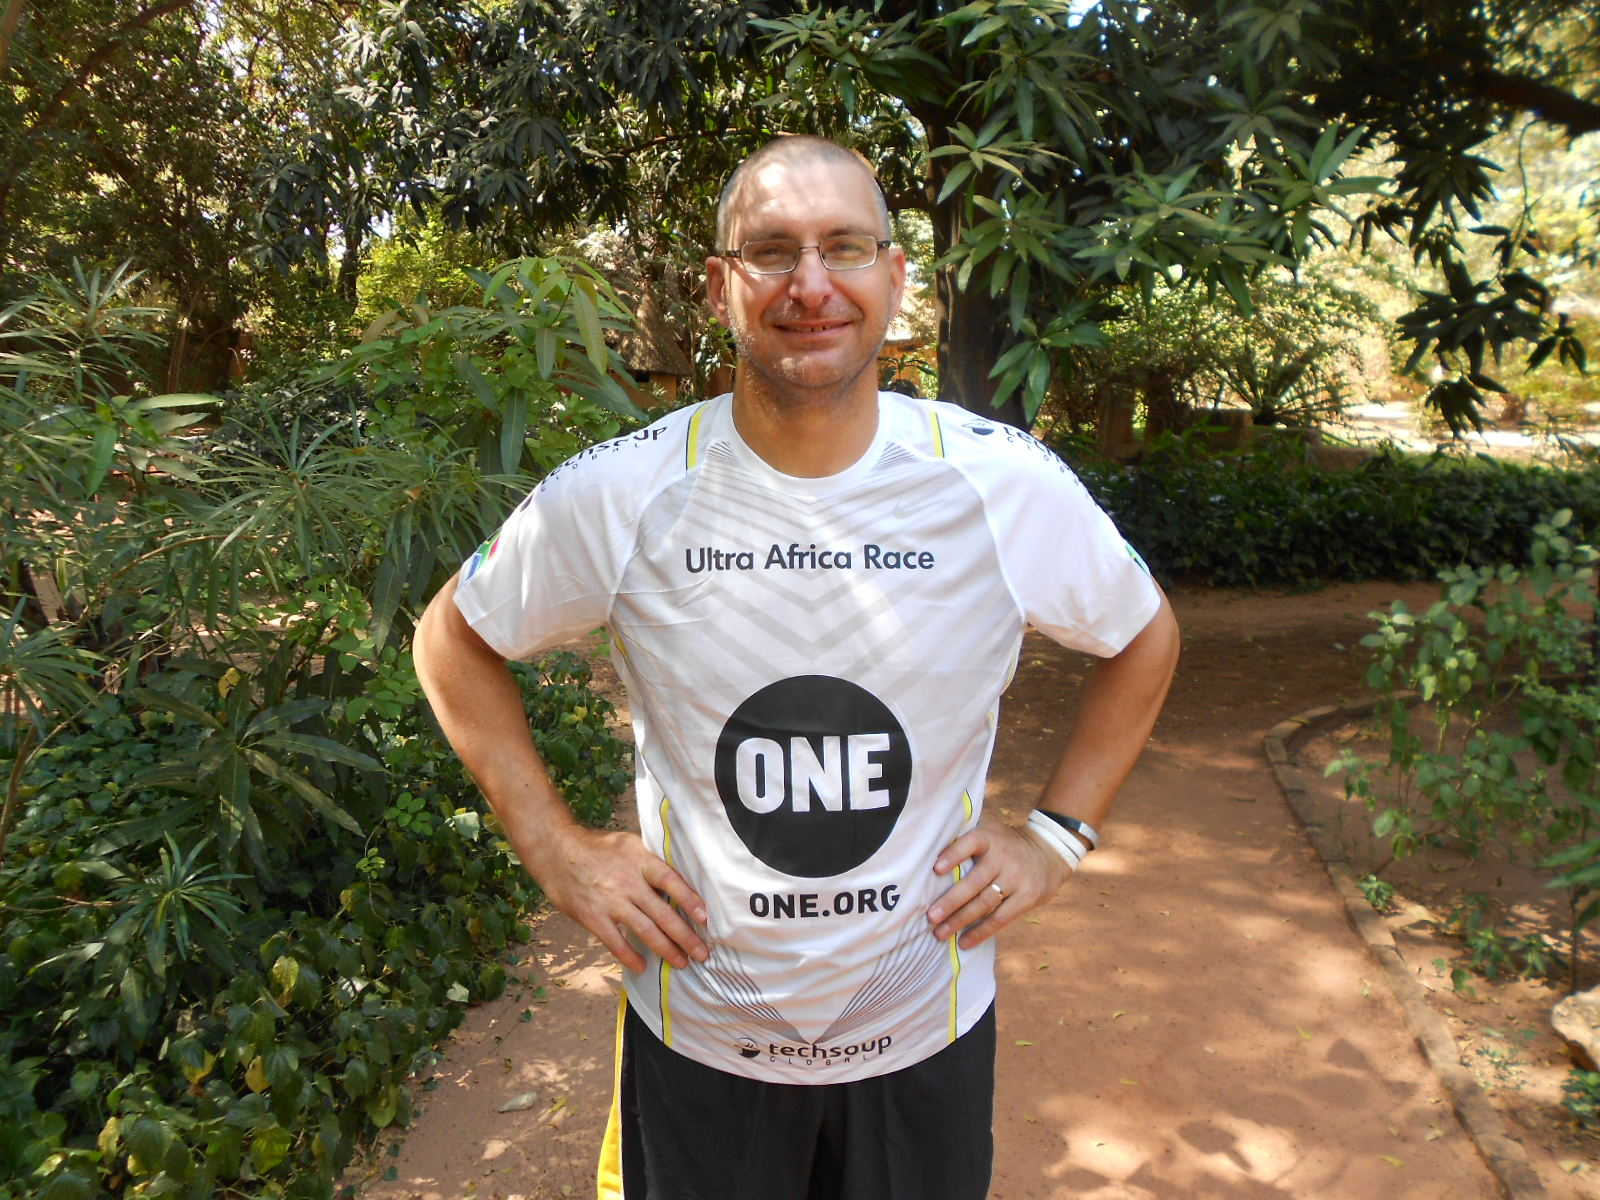 David's desert race for ONE: 5 marathons in 5 days across Burkina Faso